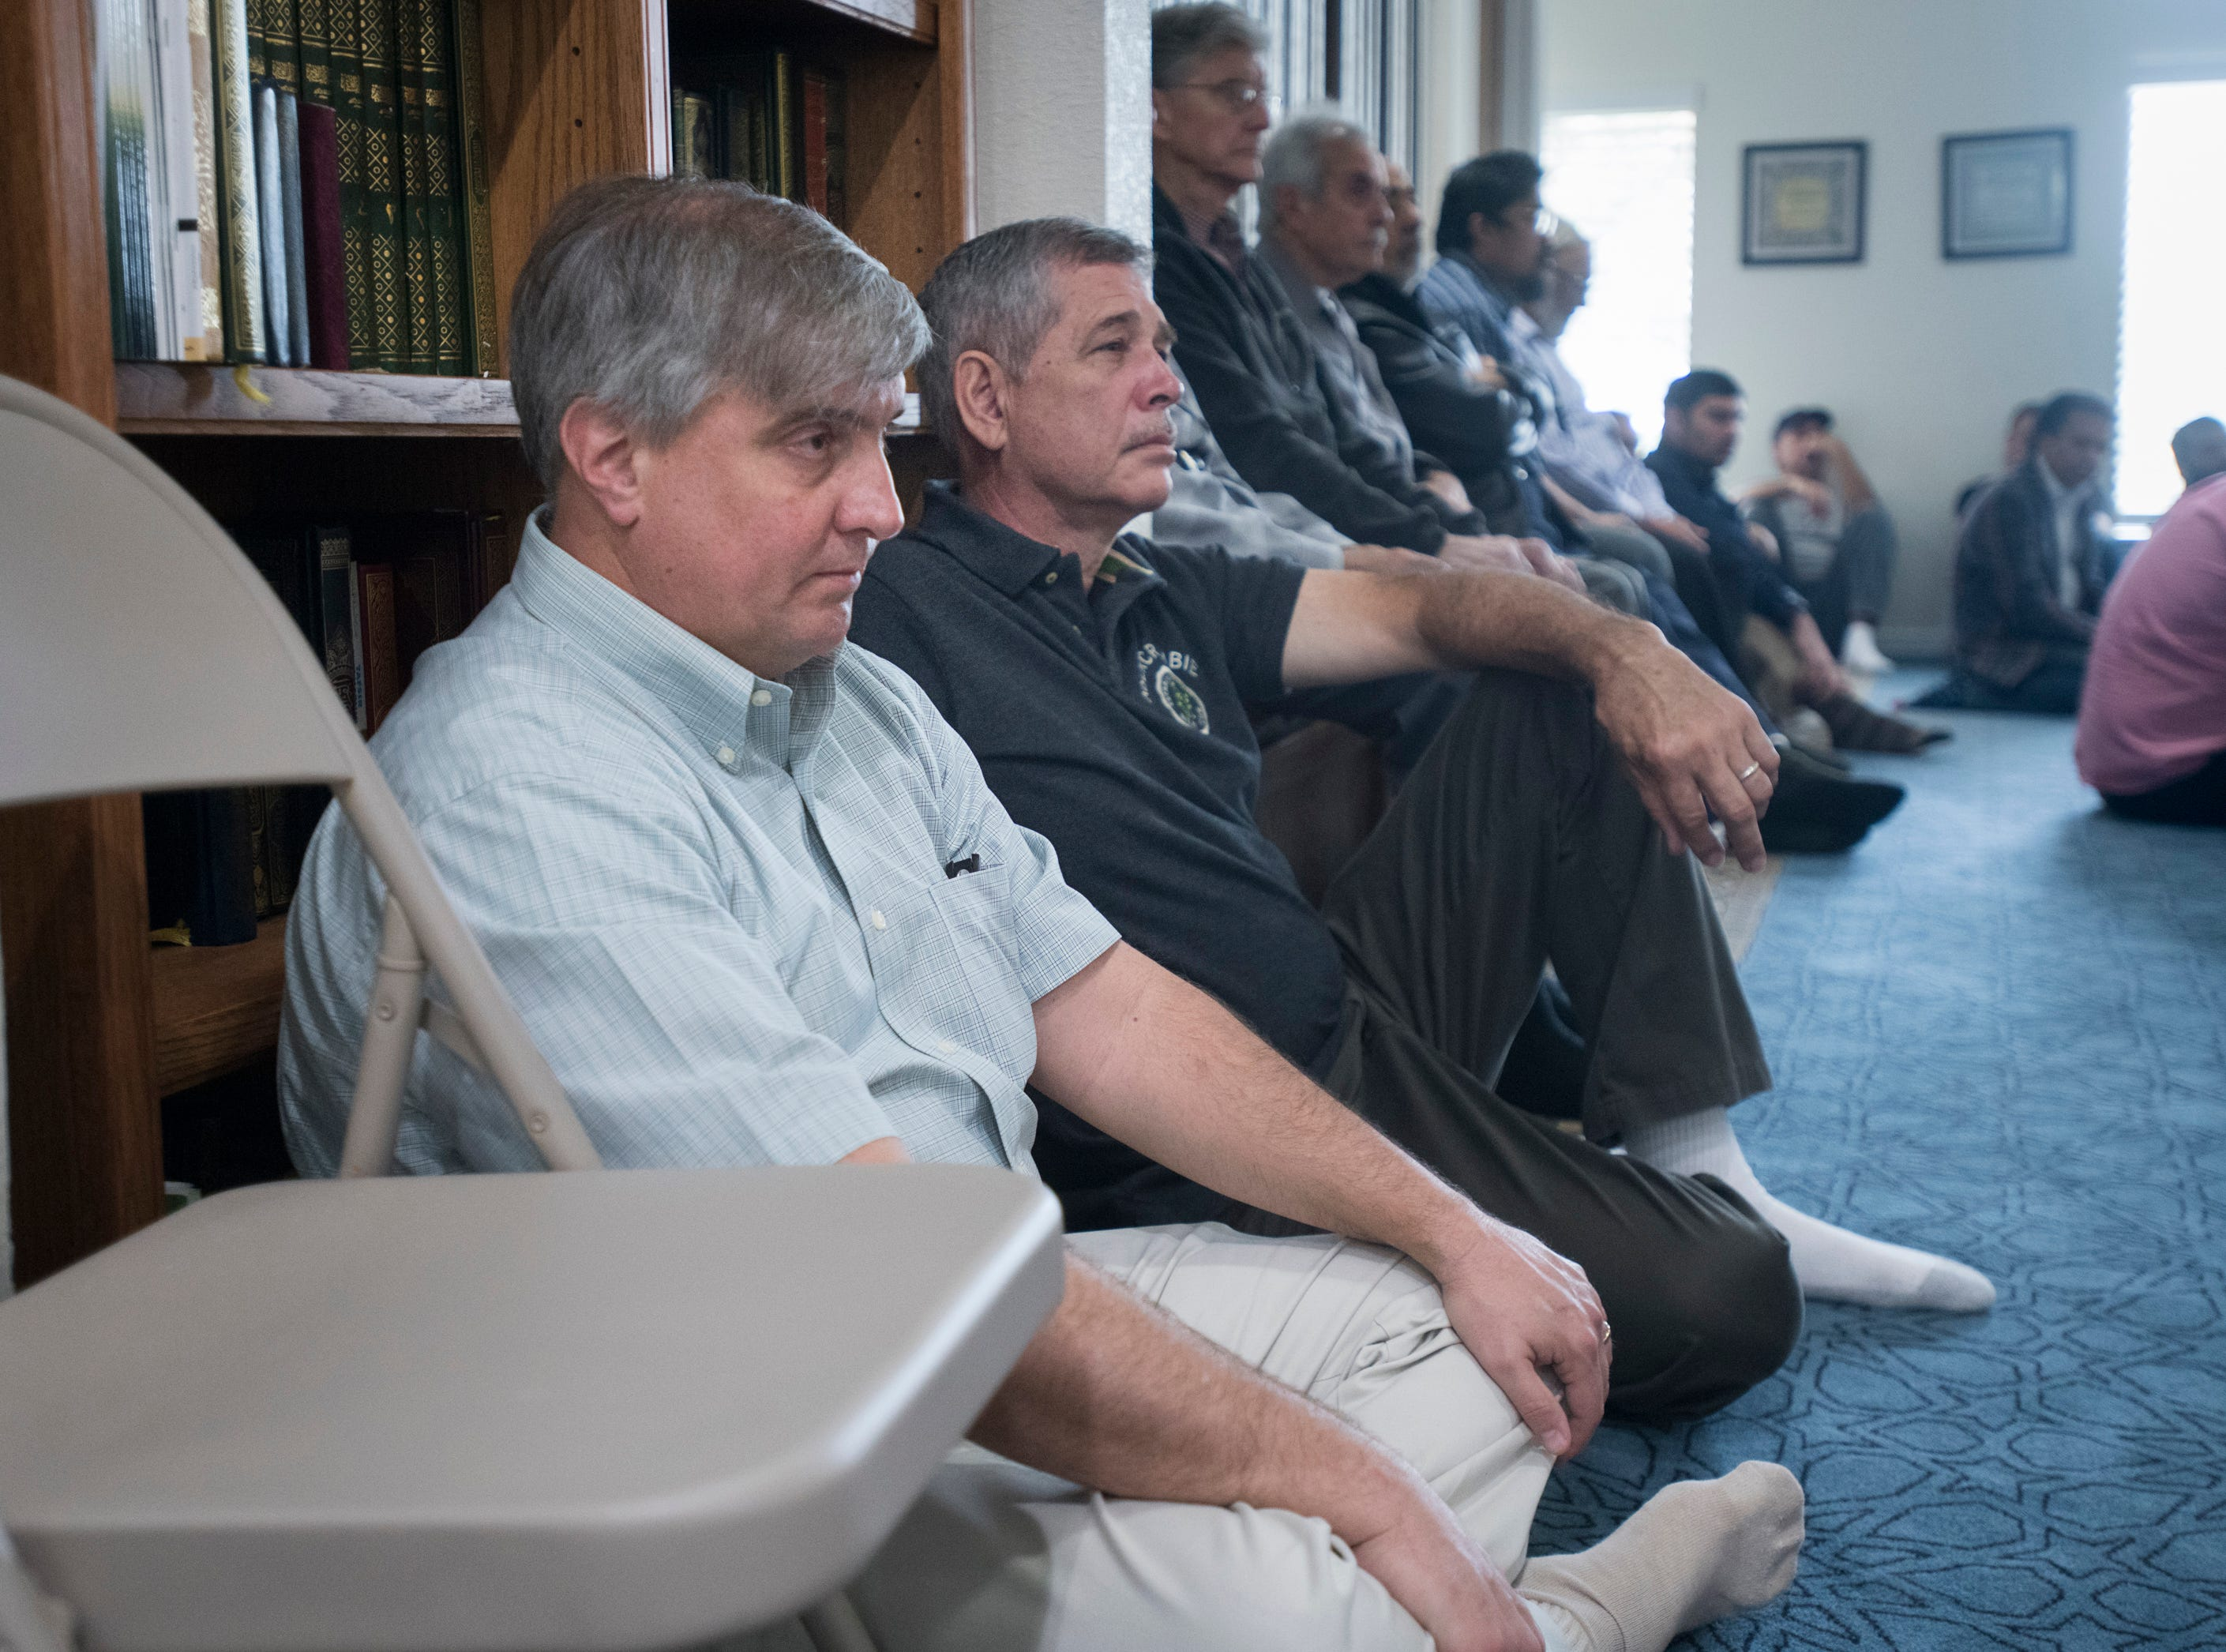 Pensacola Mayor Grover Robinson joins worshipers as they listen to the Imam speak during Jumu'ah (Friday Prayer) at the Islamic Center of Northwest Florida in Pensacola on Friday, March 15, 2019.  The Mayor expressed his support for the Muslim community following the New Zealand mosque massacre.